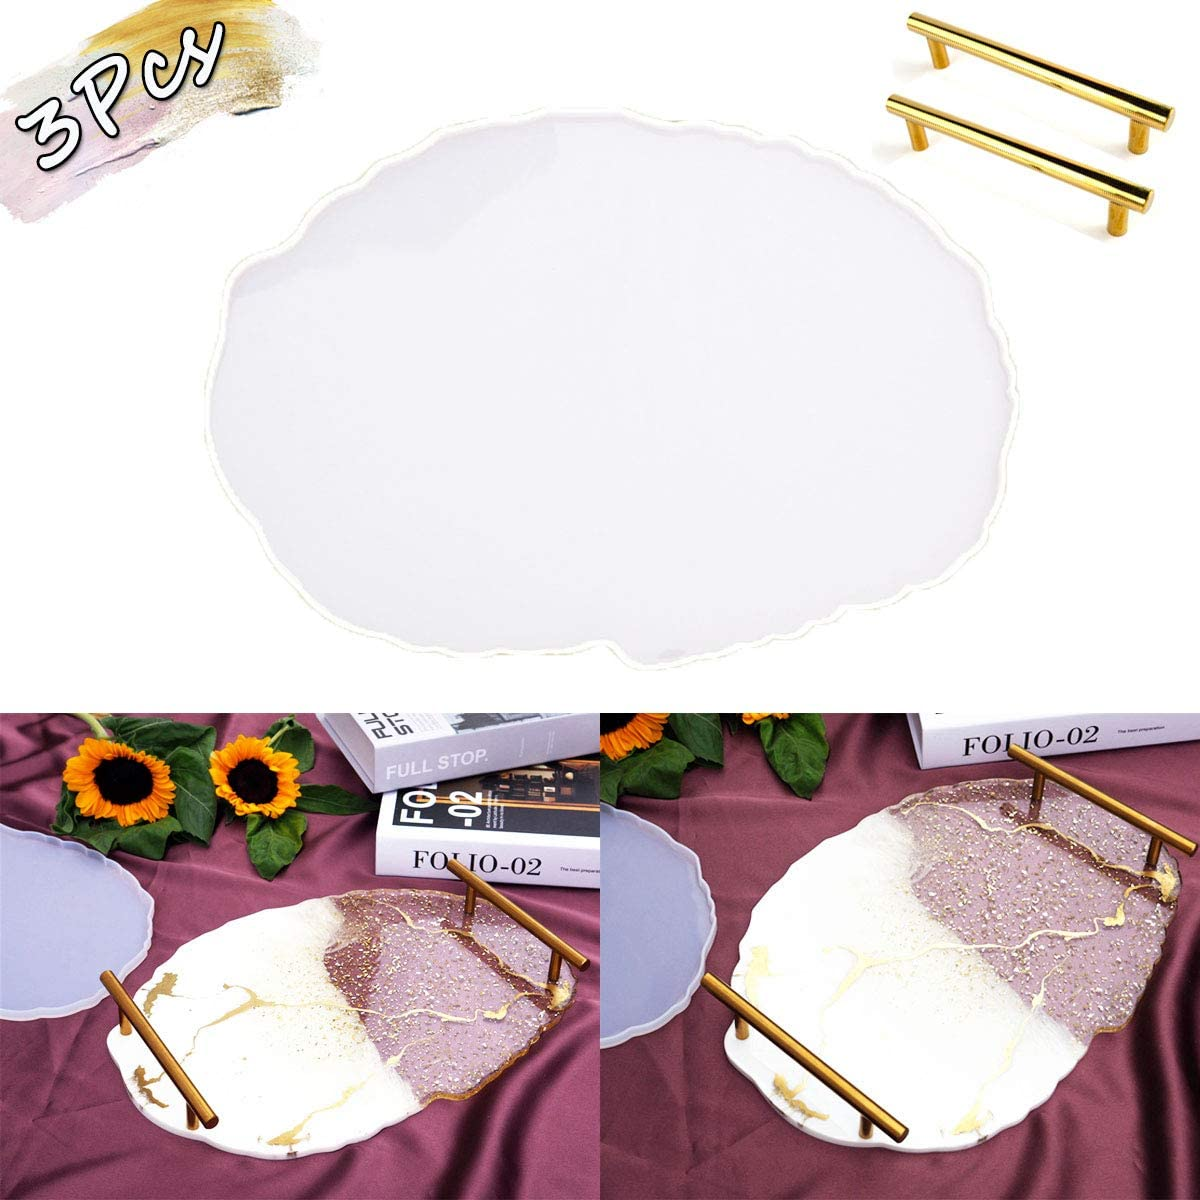 Artuxer Epoxy Resin Mold Irregular Tray Mold Large Silicone Mold for DIY Resin Tray Decoration Craft (Large Oval and Comes with Two Handles)